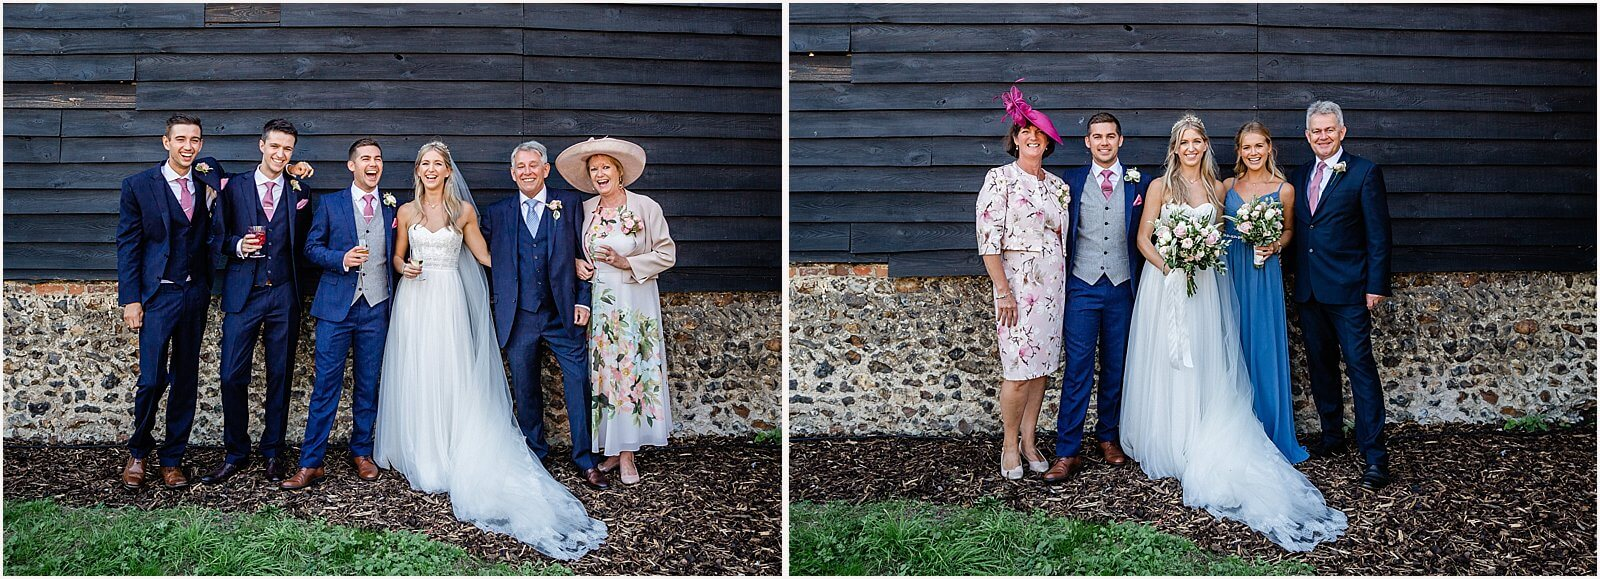 wedding photographer guildford